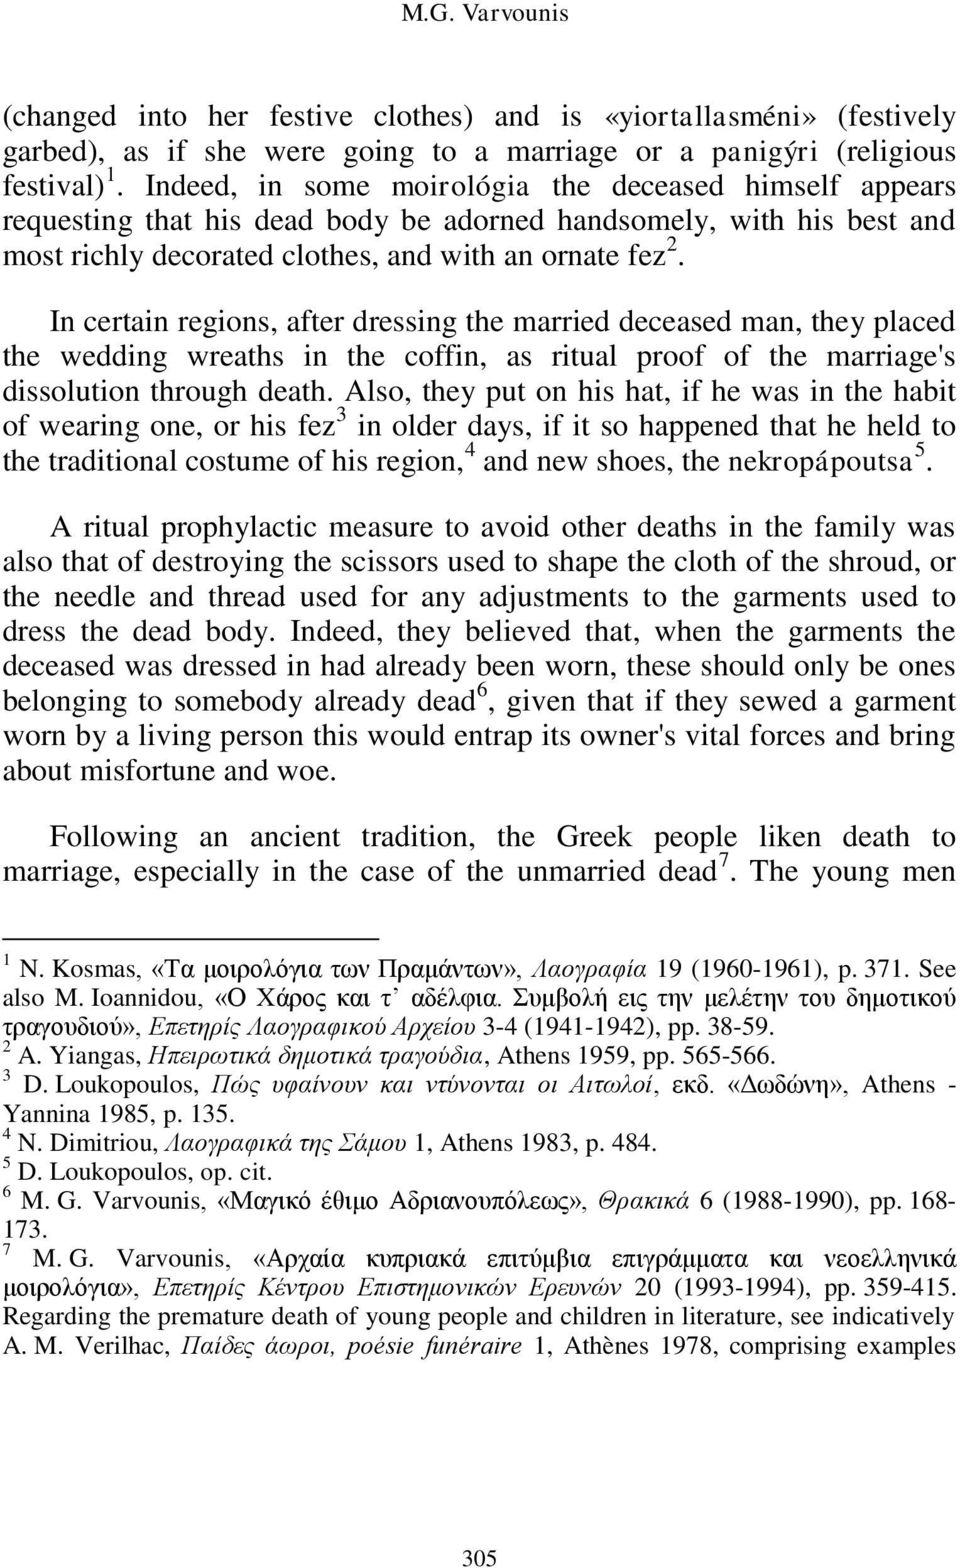 In certain regions, after dressing the married deceased man, they placed the wedding wreaths in the coffin, as ritual proof of the marriage's dissolution through death.